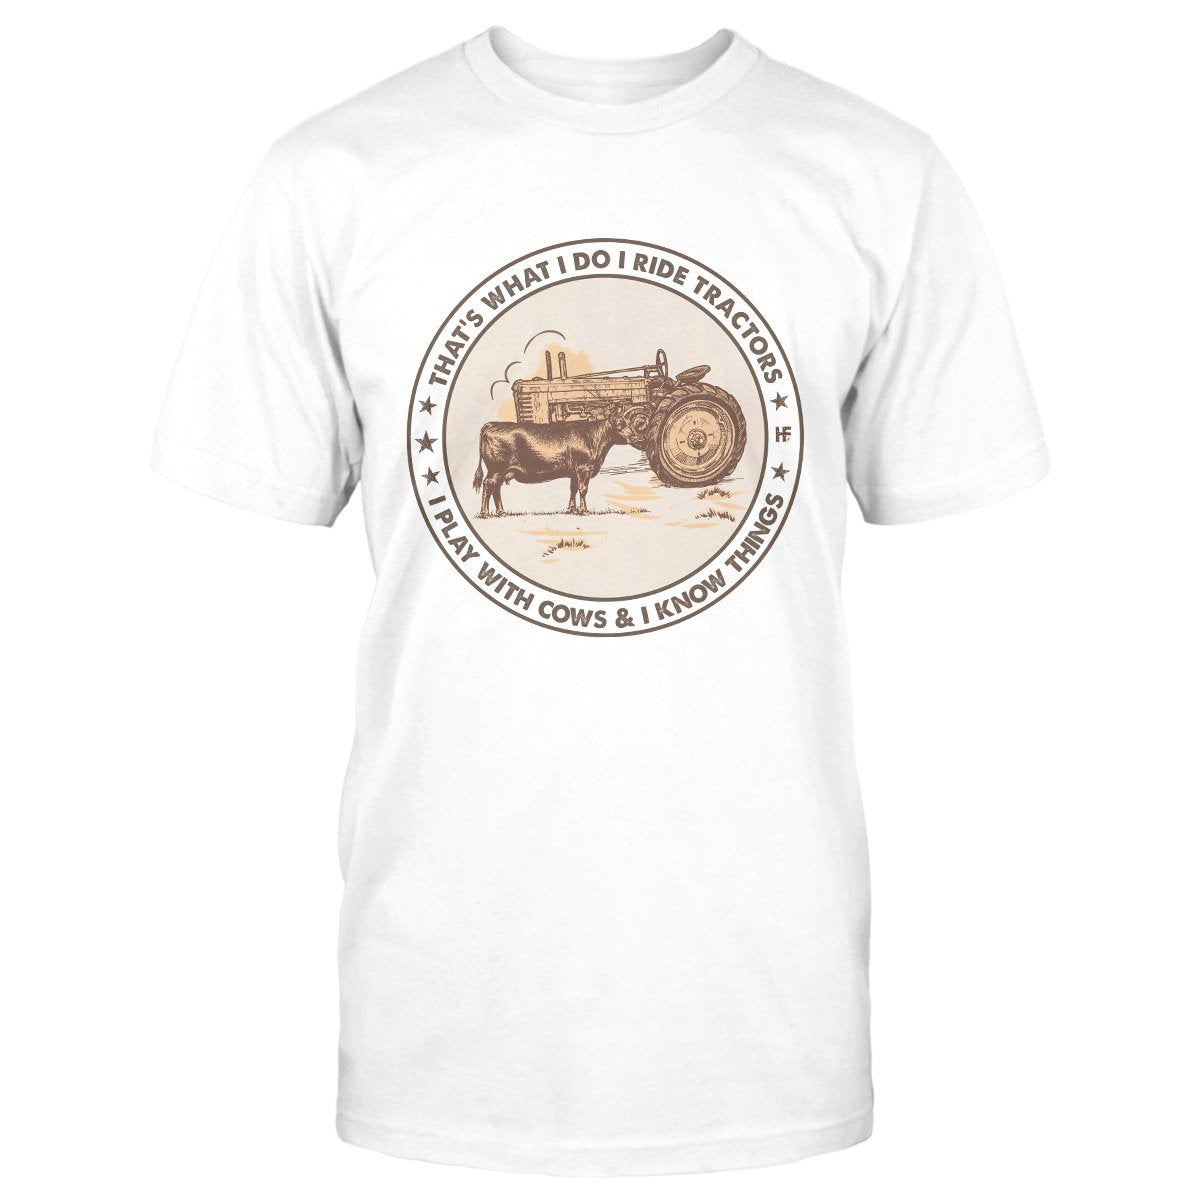 I Ride Tractor And Play With Cows V2 EZ16 0602 Classic T-shirt